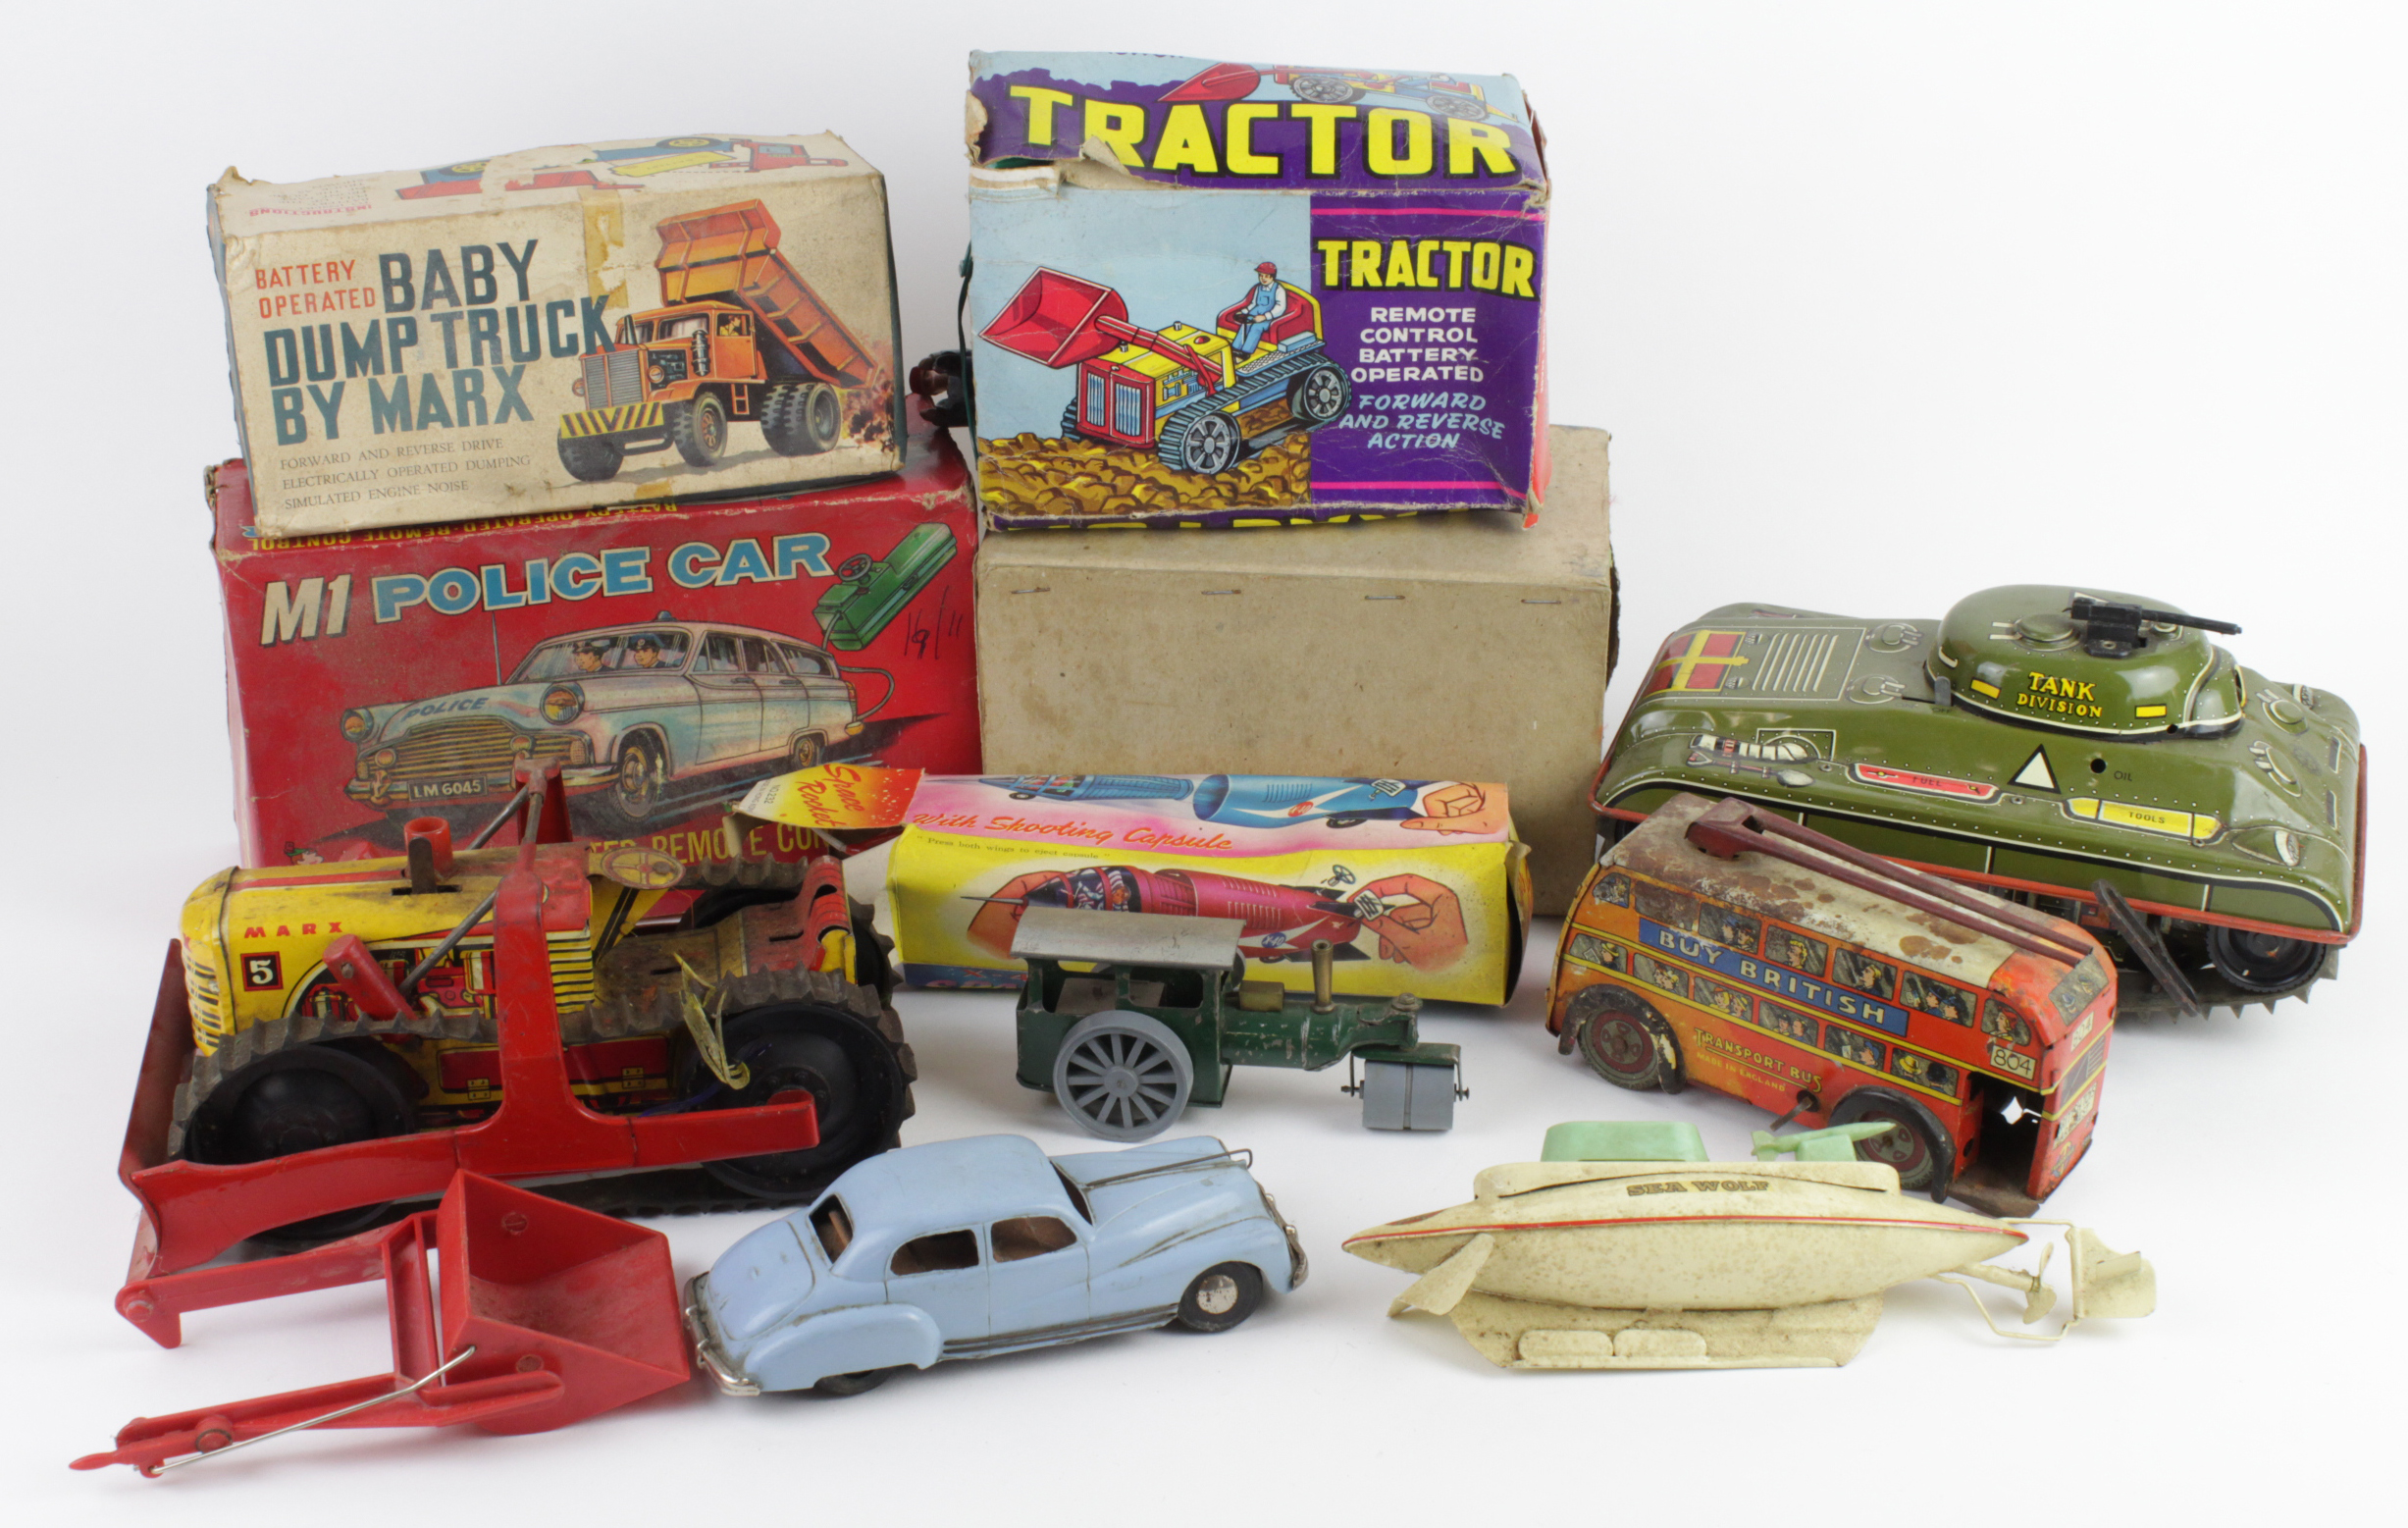 Lot 689 - Vintage Toys. A collection of vintage toys (some boxed), including Marx Battery Operated Dump Truck,